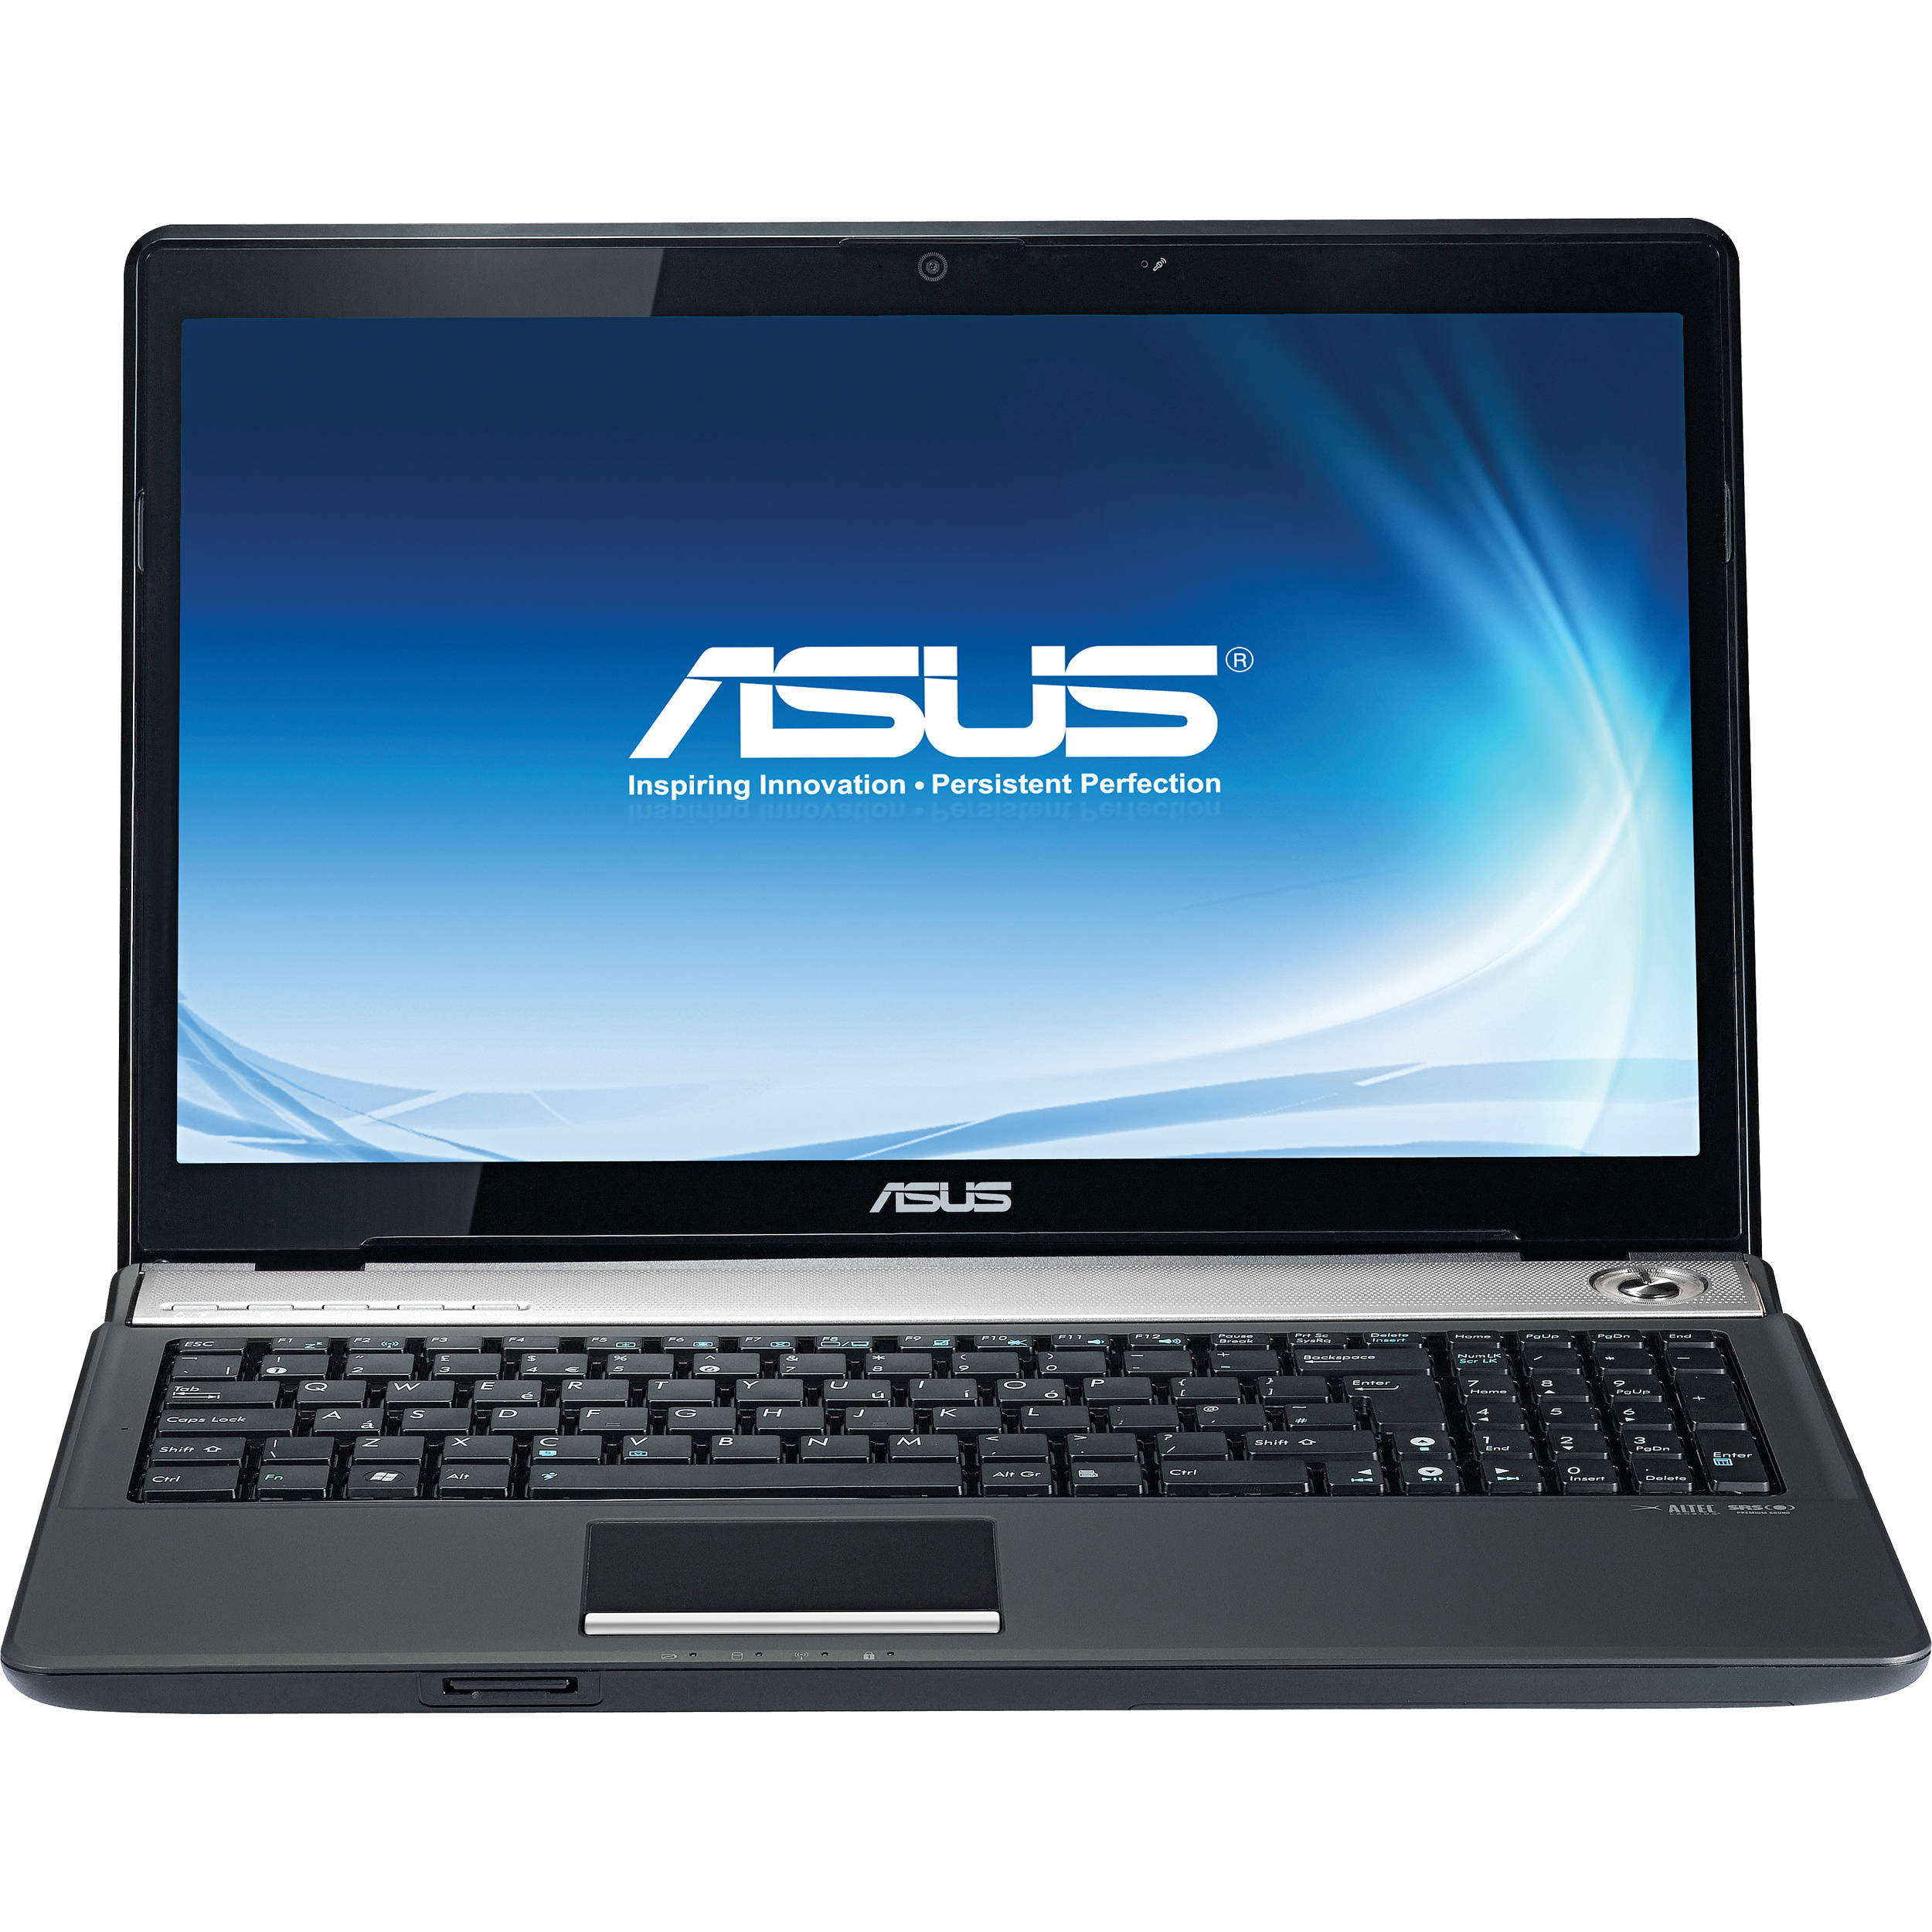 Asus N61Jq Notebook ATK Media Windows 8